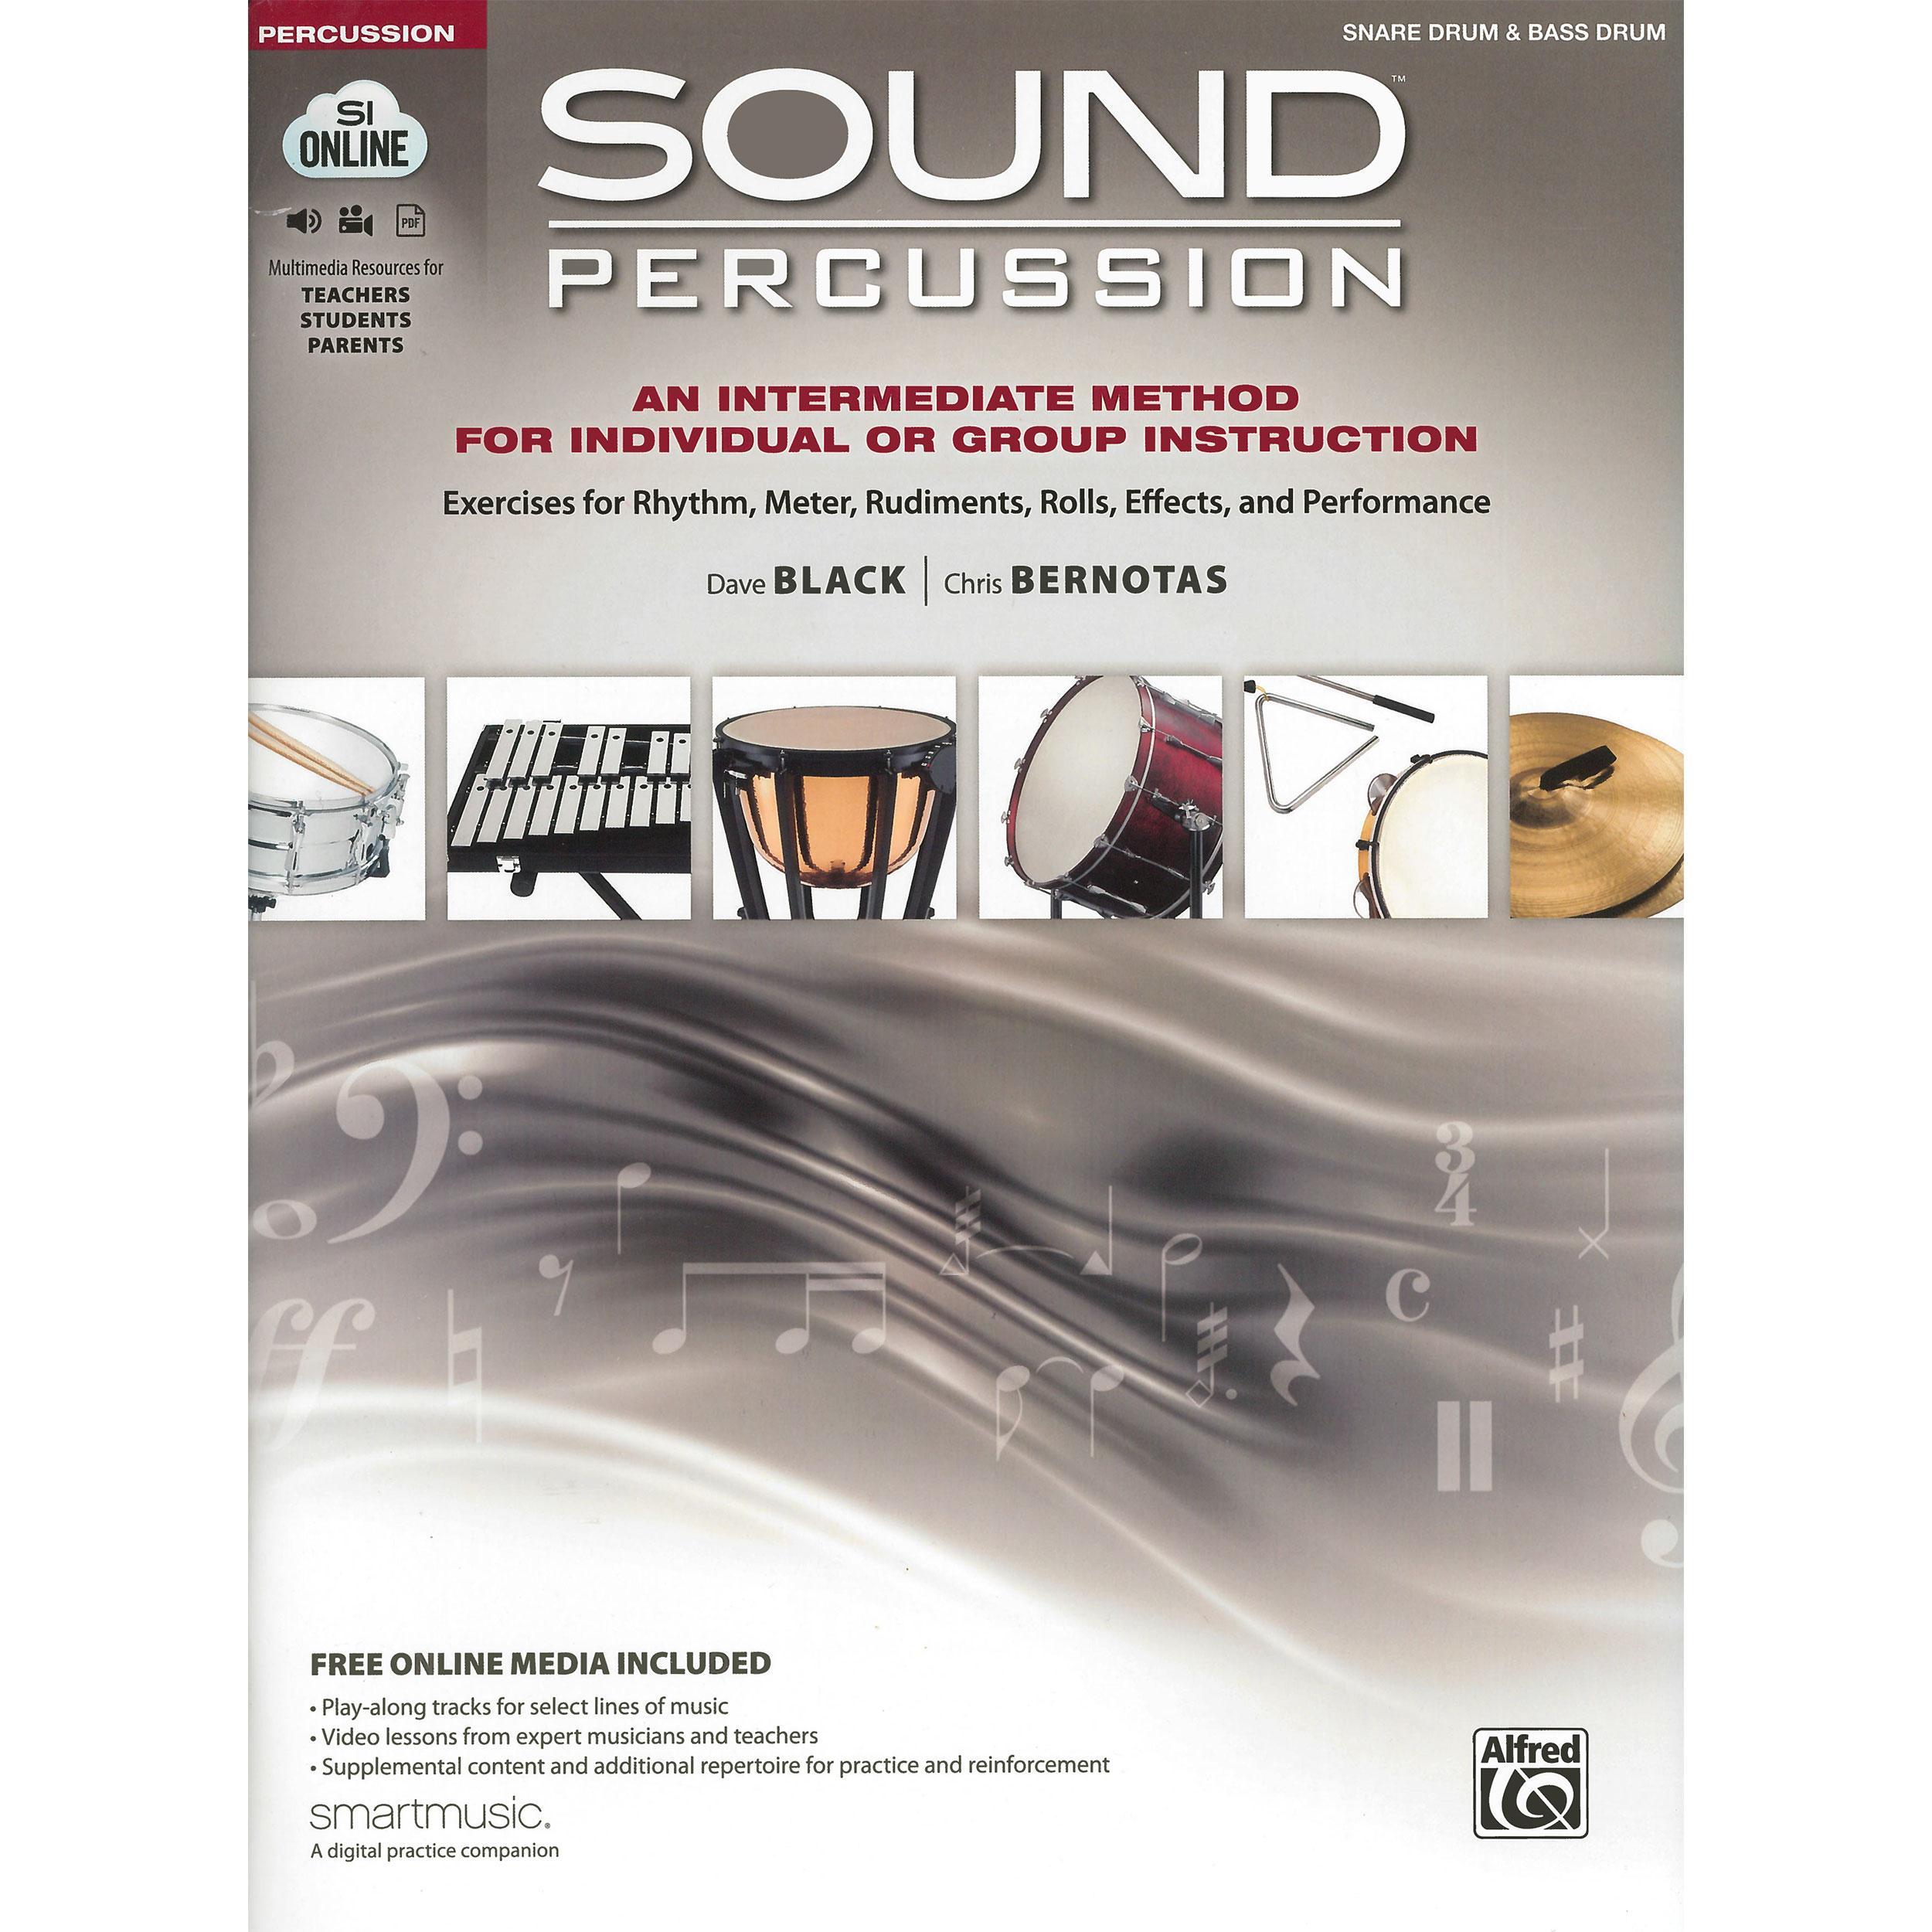 Sound Percussion by Dave Black and Chris Bernotas (Snare & Bass Drum)